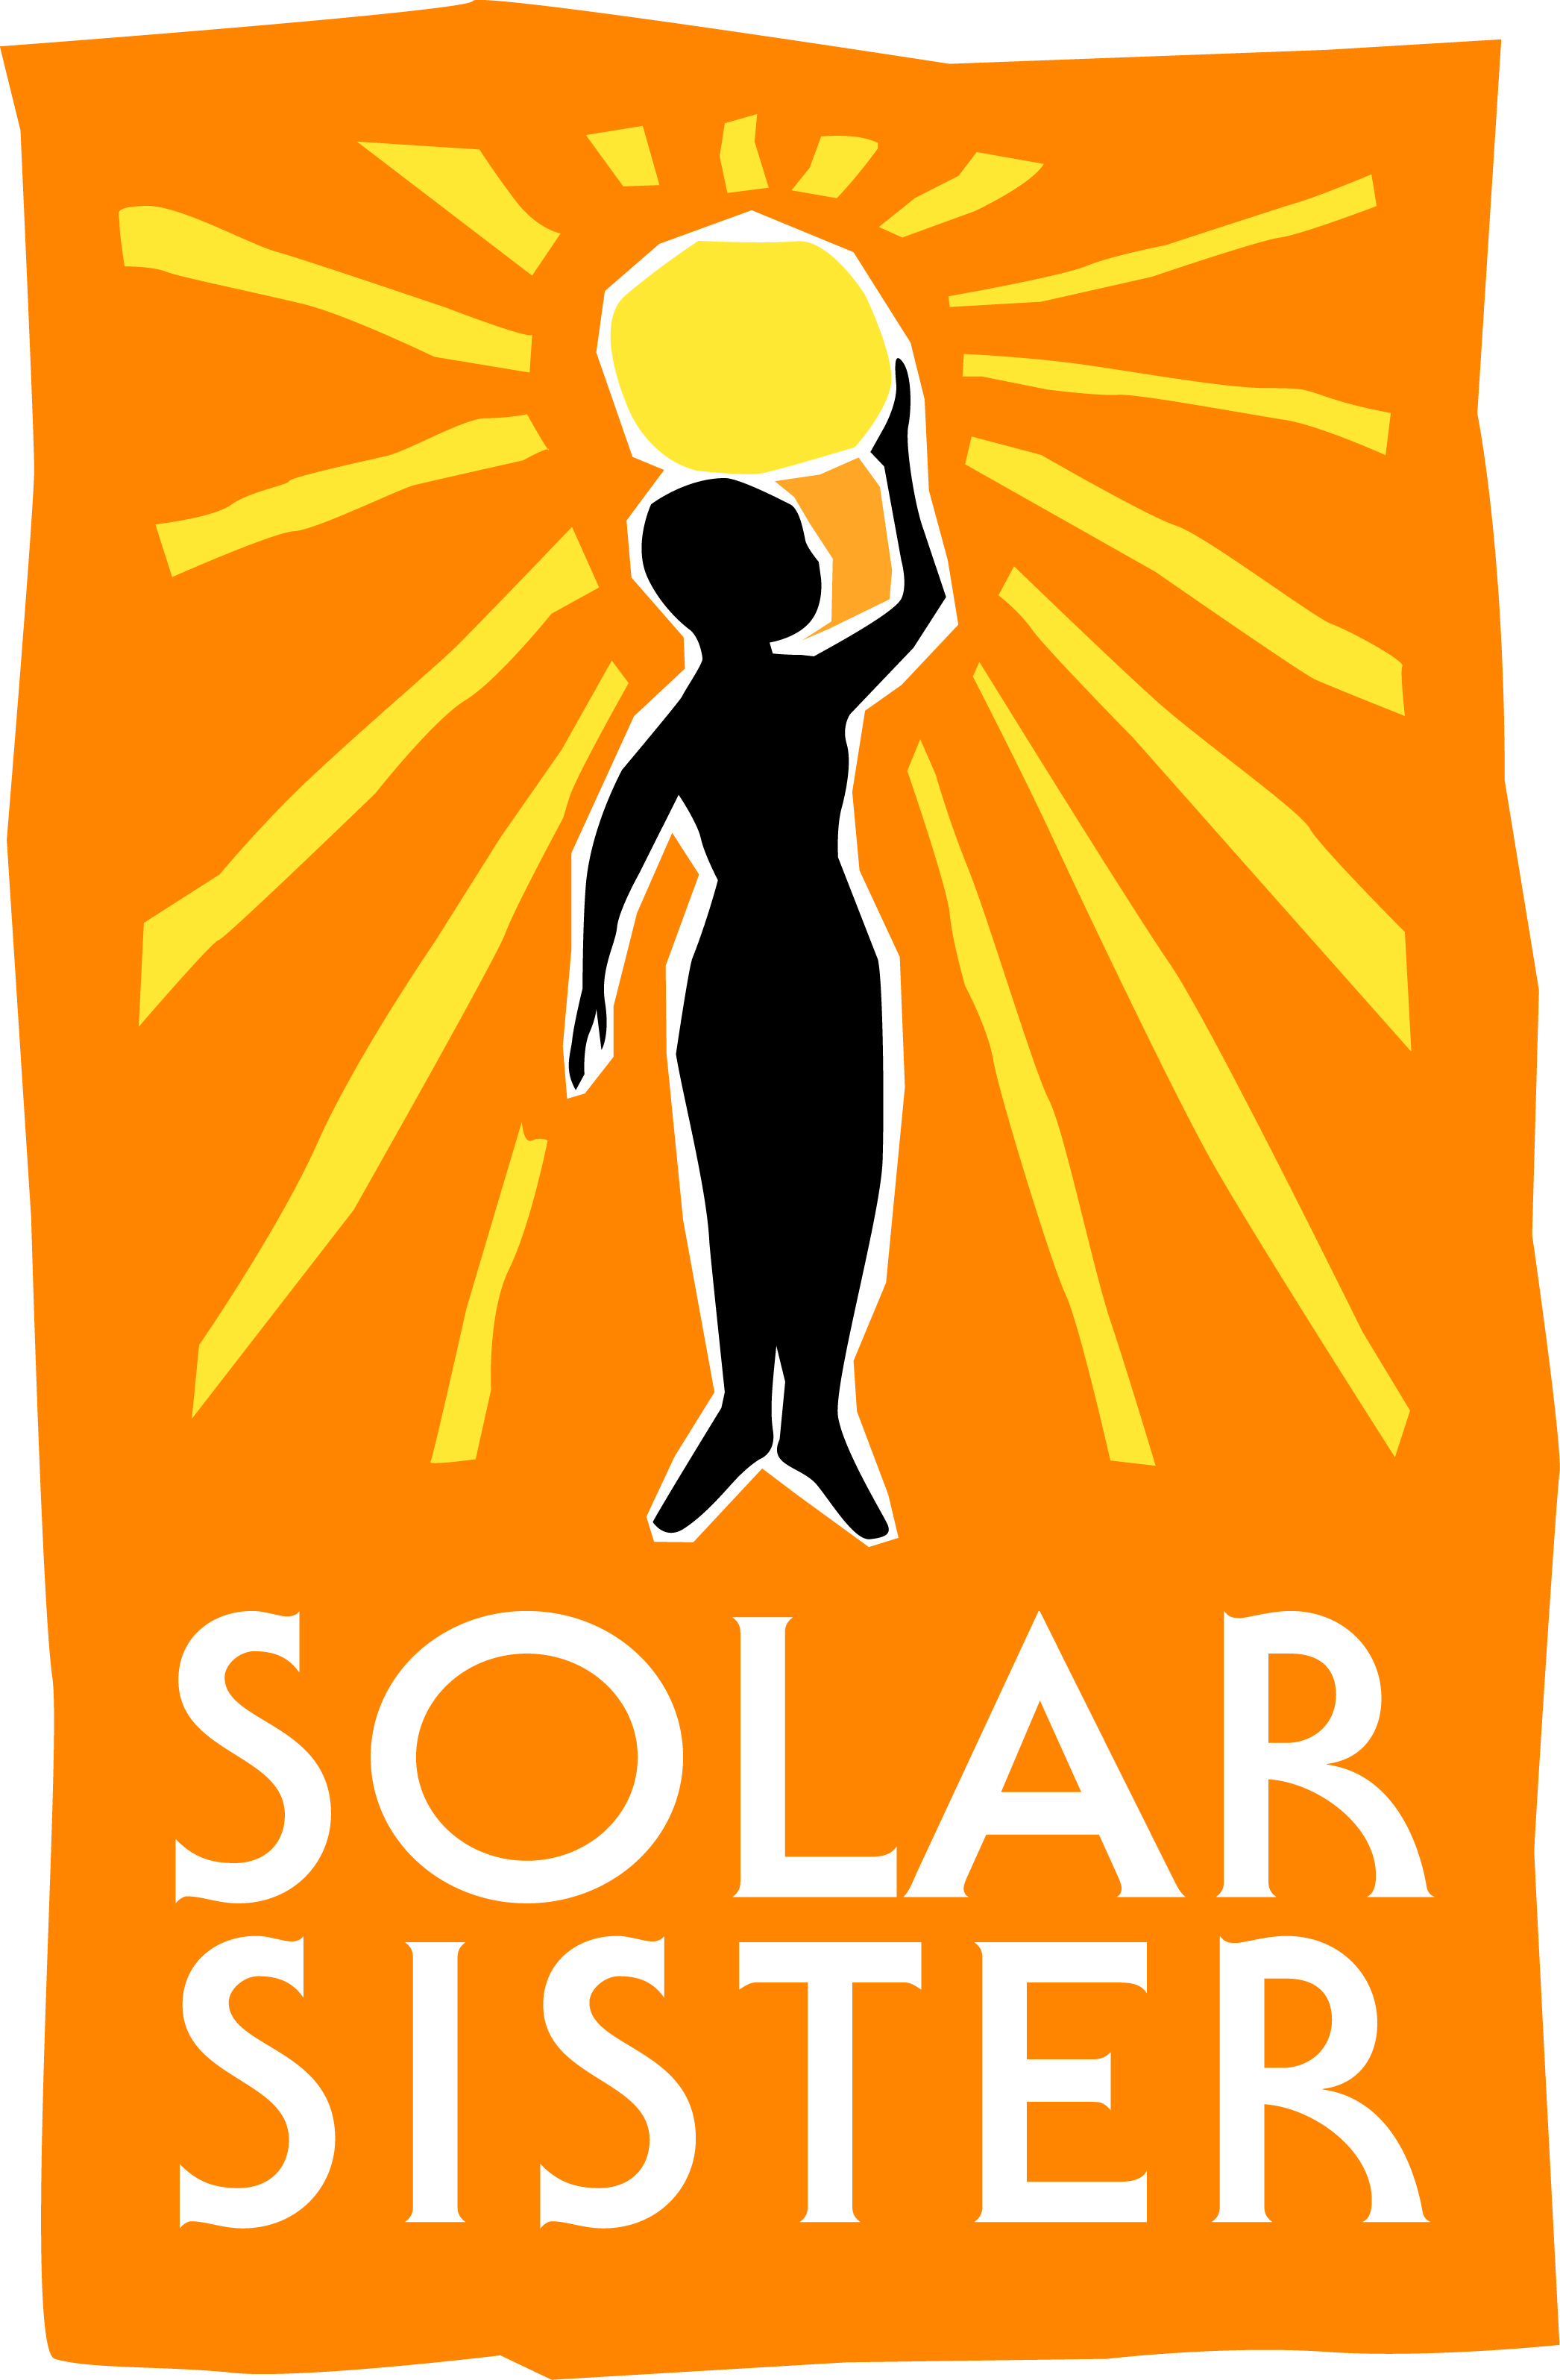 solar sister - Delivering trusted, sustainable energy access, and building climate resilience in remote and underserved communities.